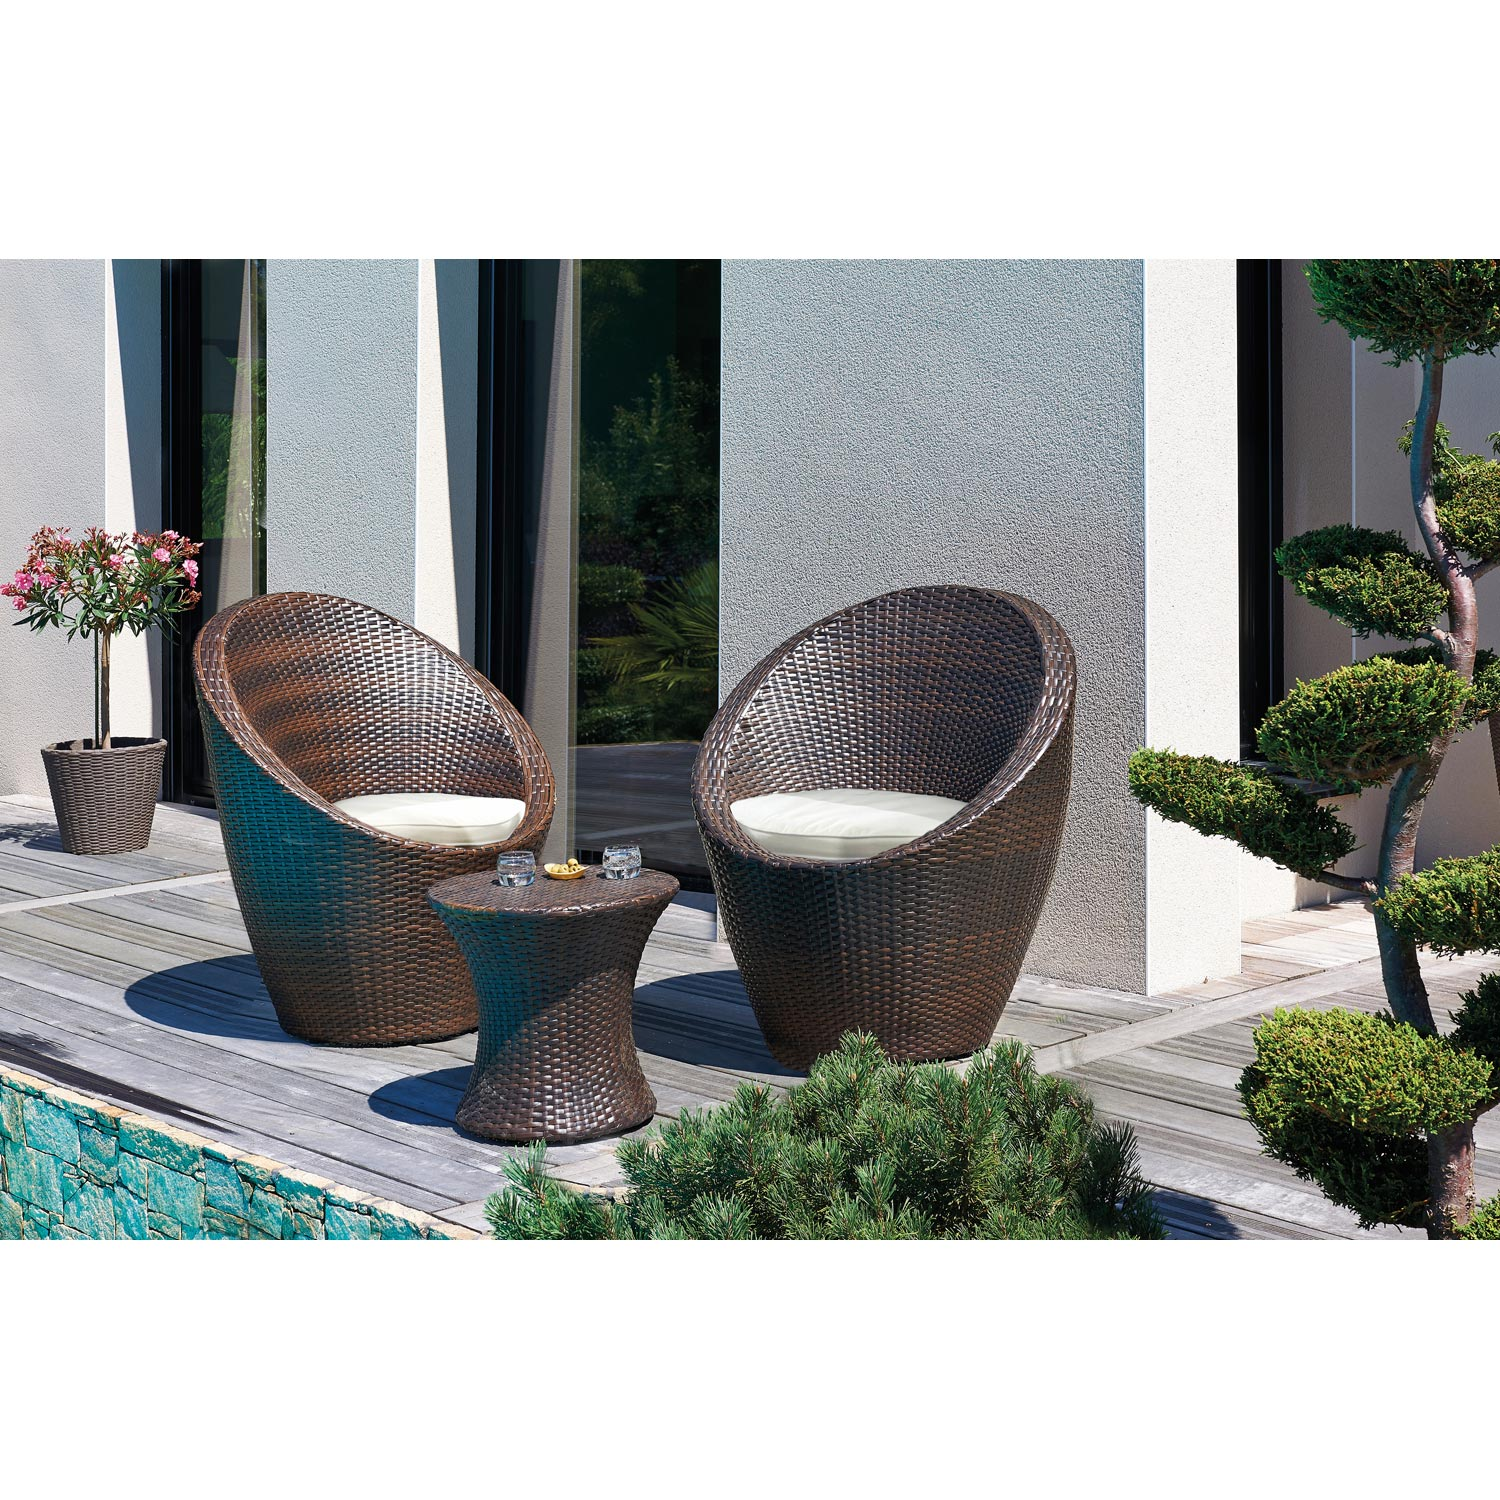 Salon bas de jardin totem r sine tress e chocolat 1 table - Salon de jardin en resine leroy merlin ...